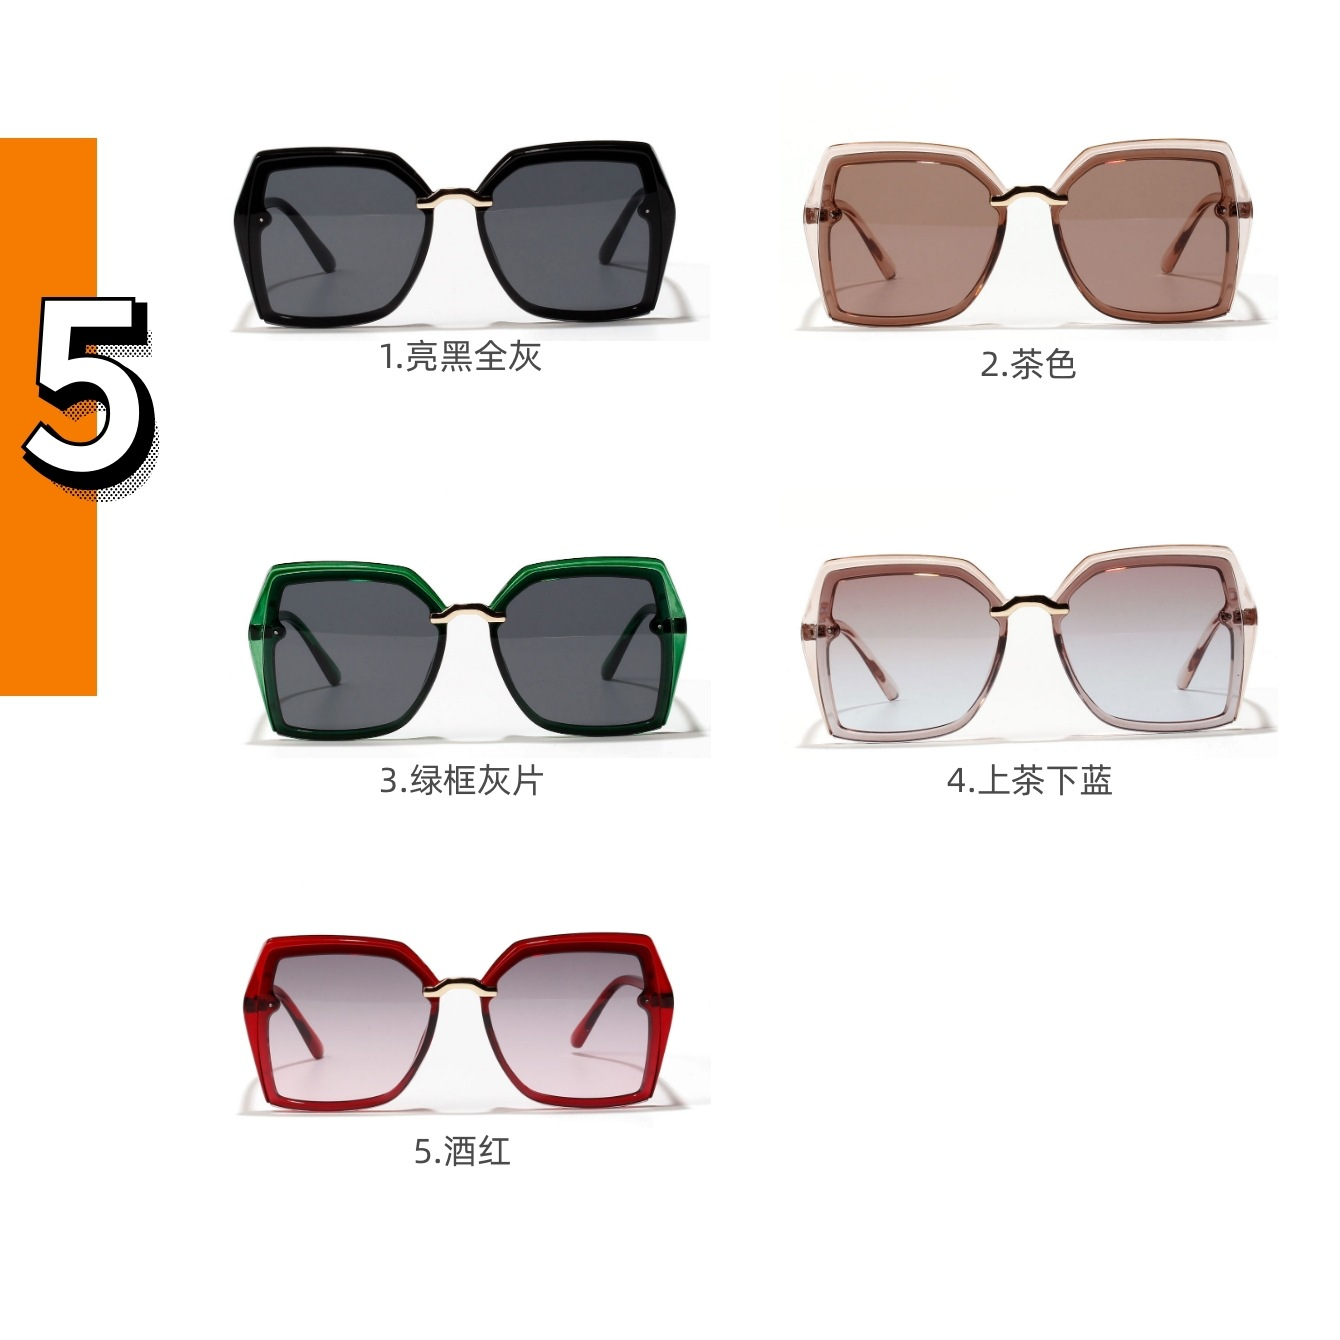 Korean new fashion square large frame glasses retro sunglasses UV protection glasses NHXU209896